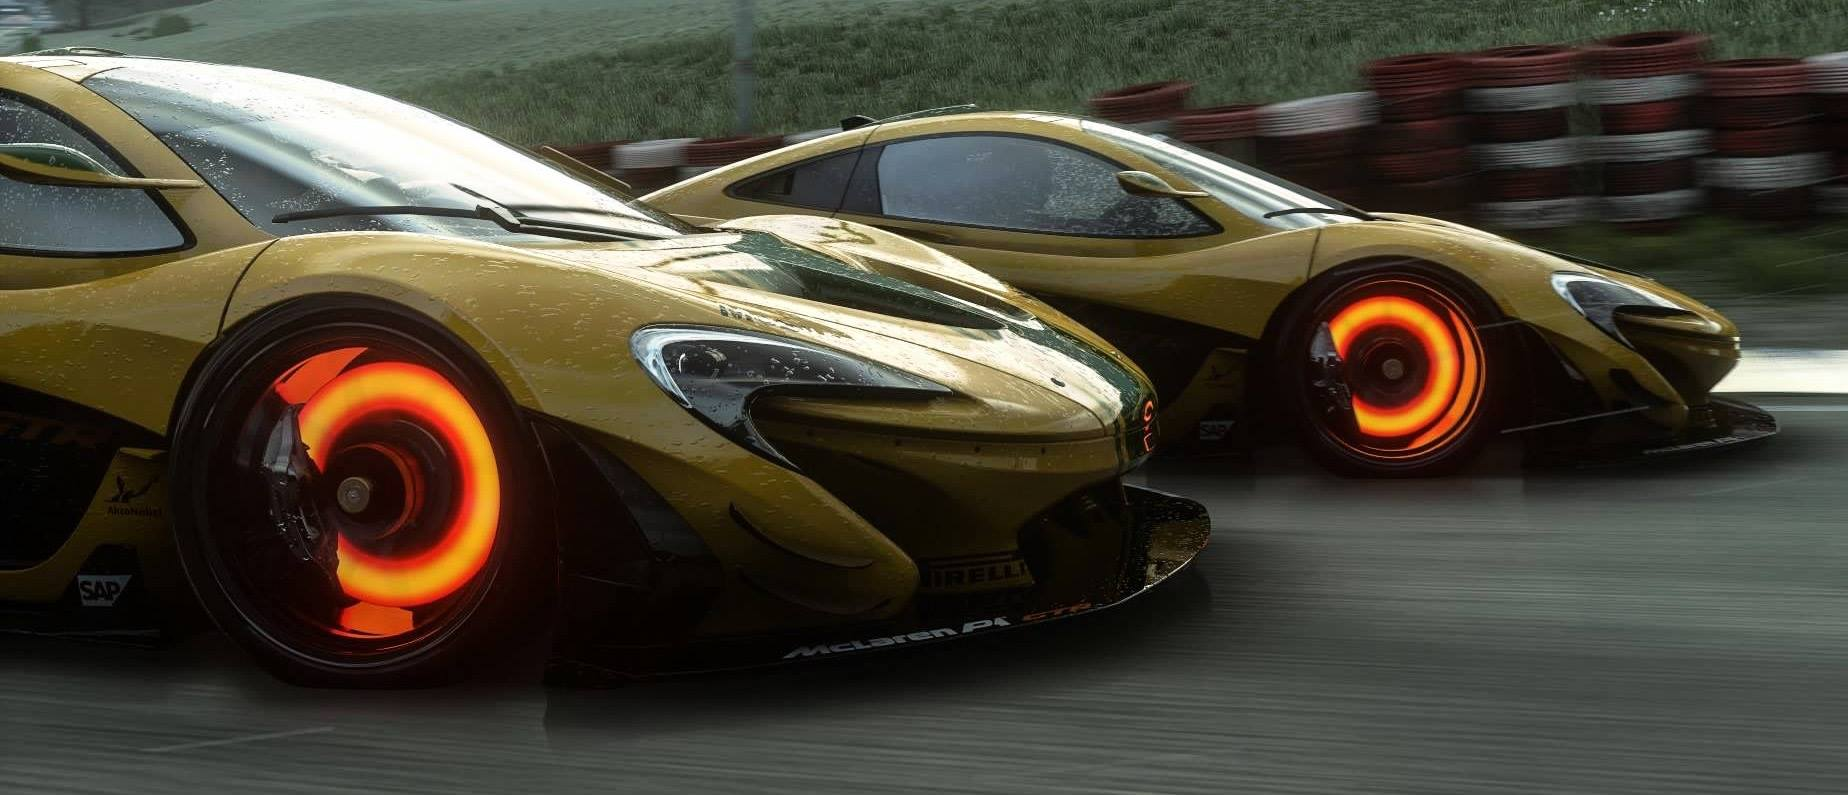 stunning mclaren p1 gtr pictures from ps4 39 s driveclub gtspirit. Black Bedroom Furniture Sets. Home Design Ideas